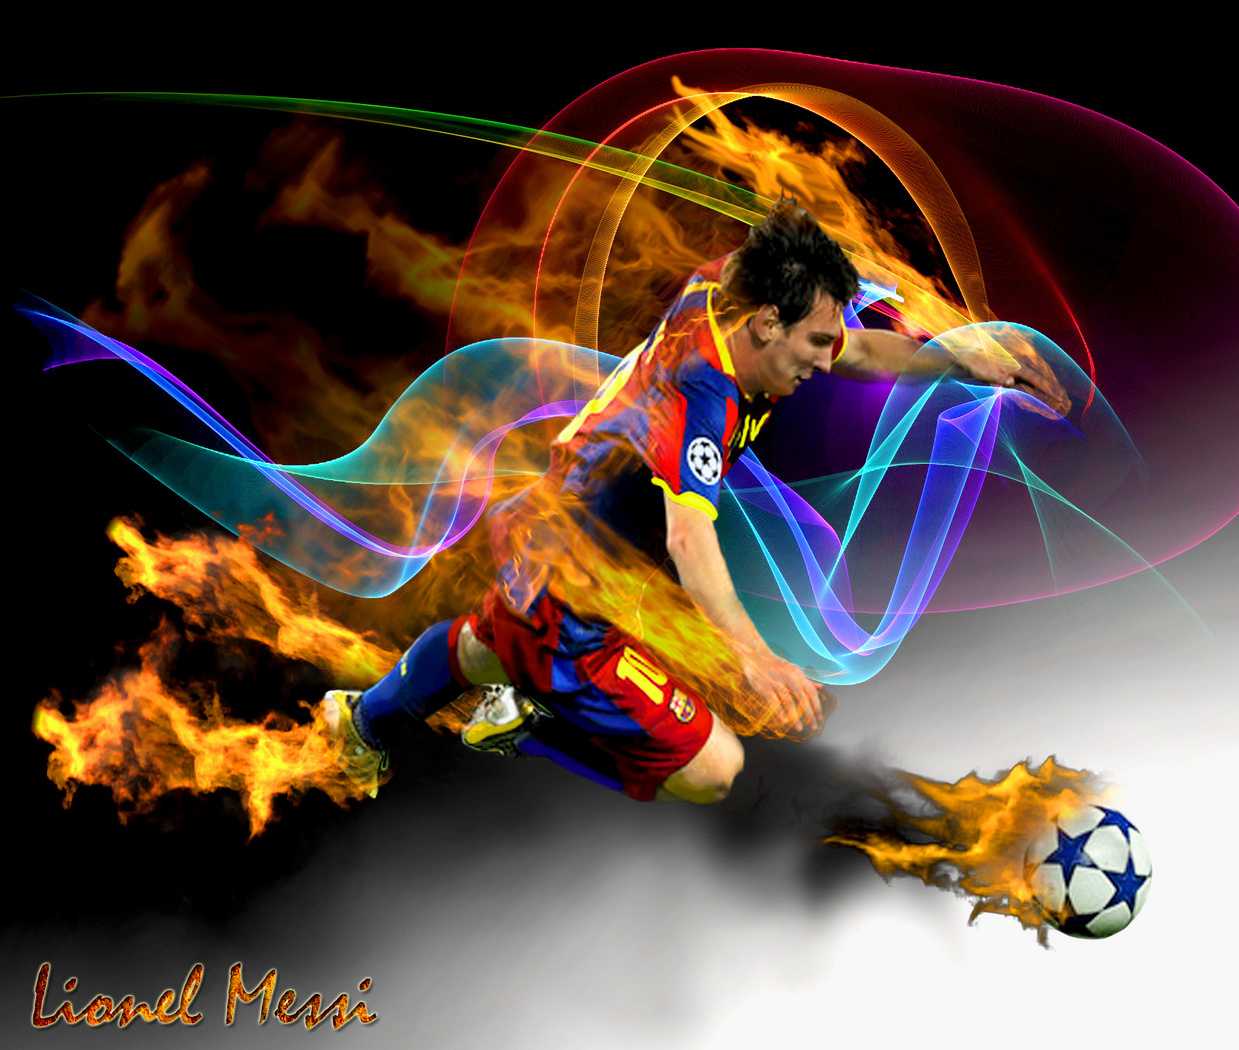 Lionel Messi wallpapers Craftily Created 1239x1050